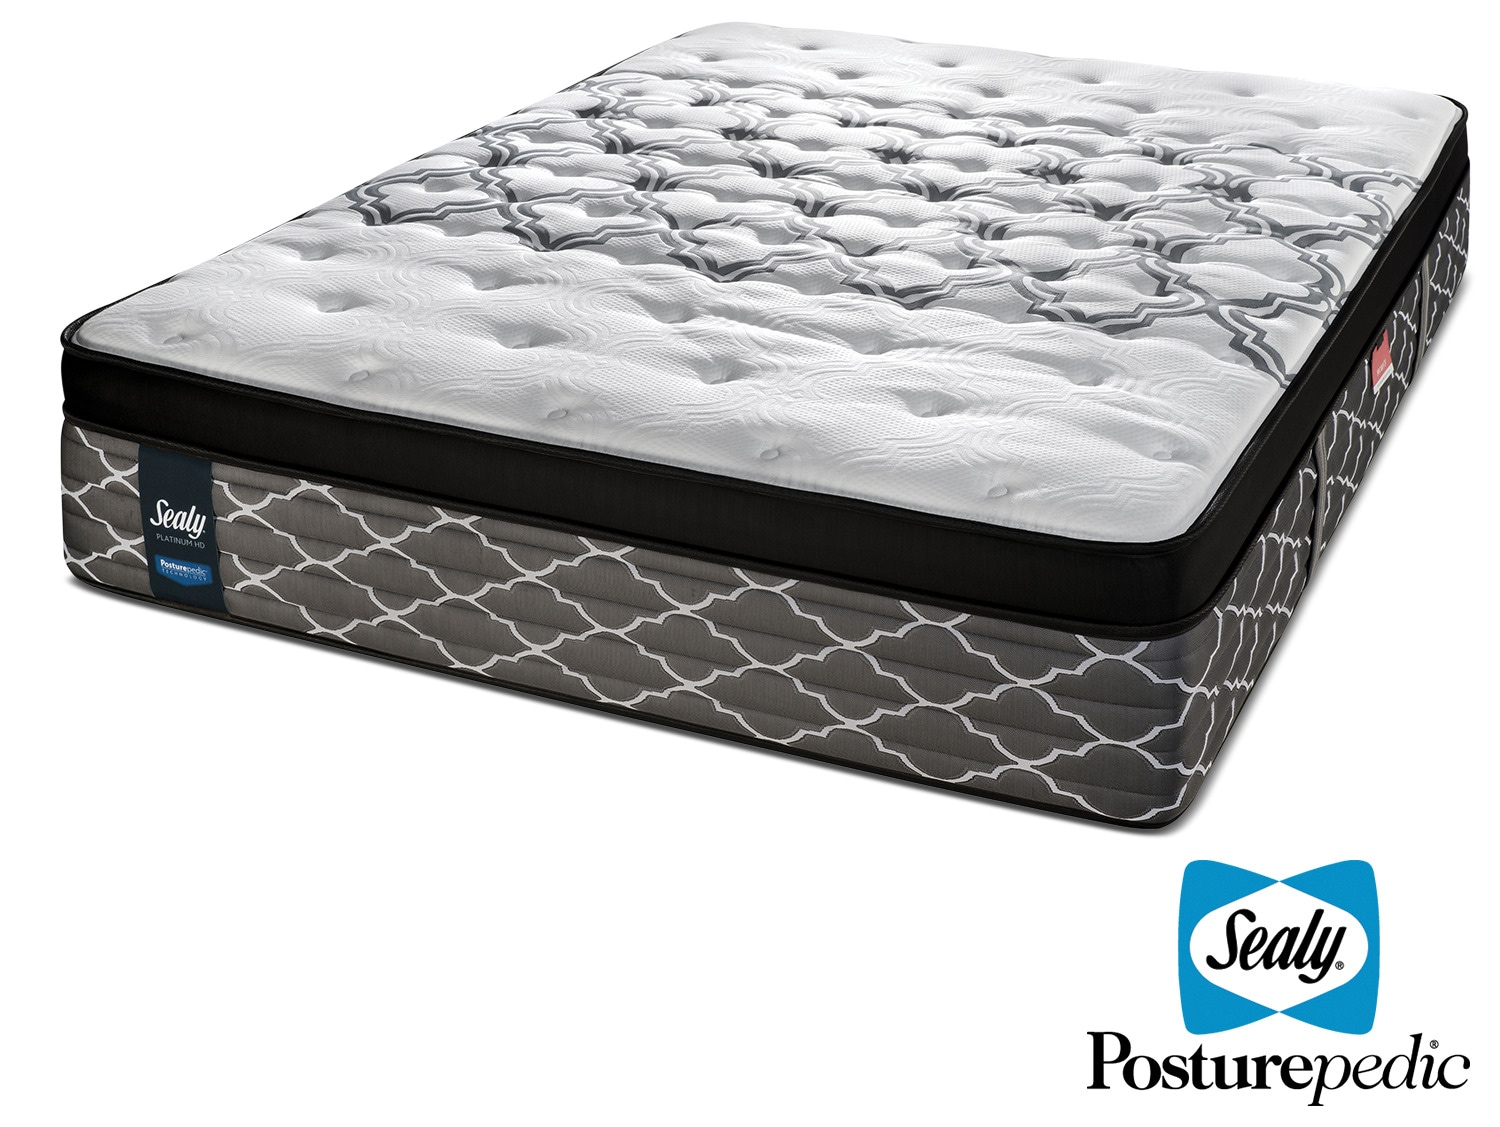 Sealy Dreamy Night Hybrid Firm Queen Mattress